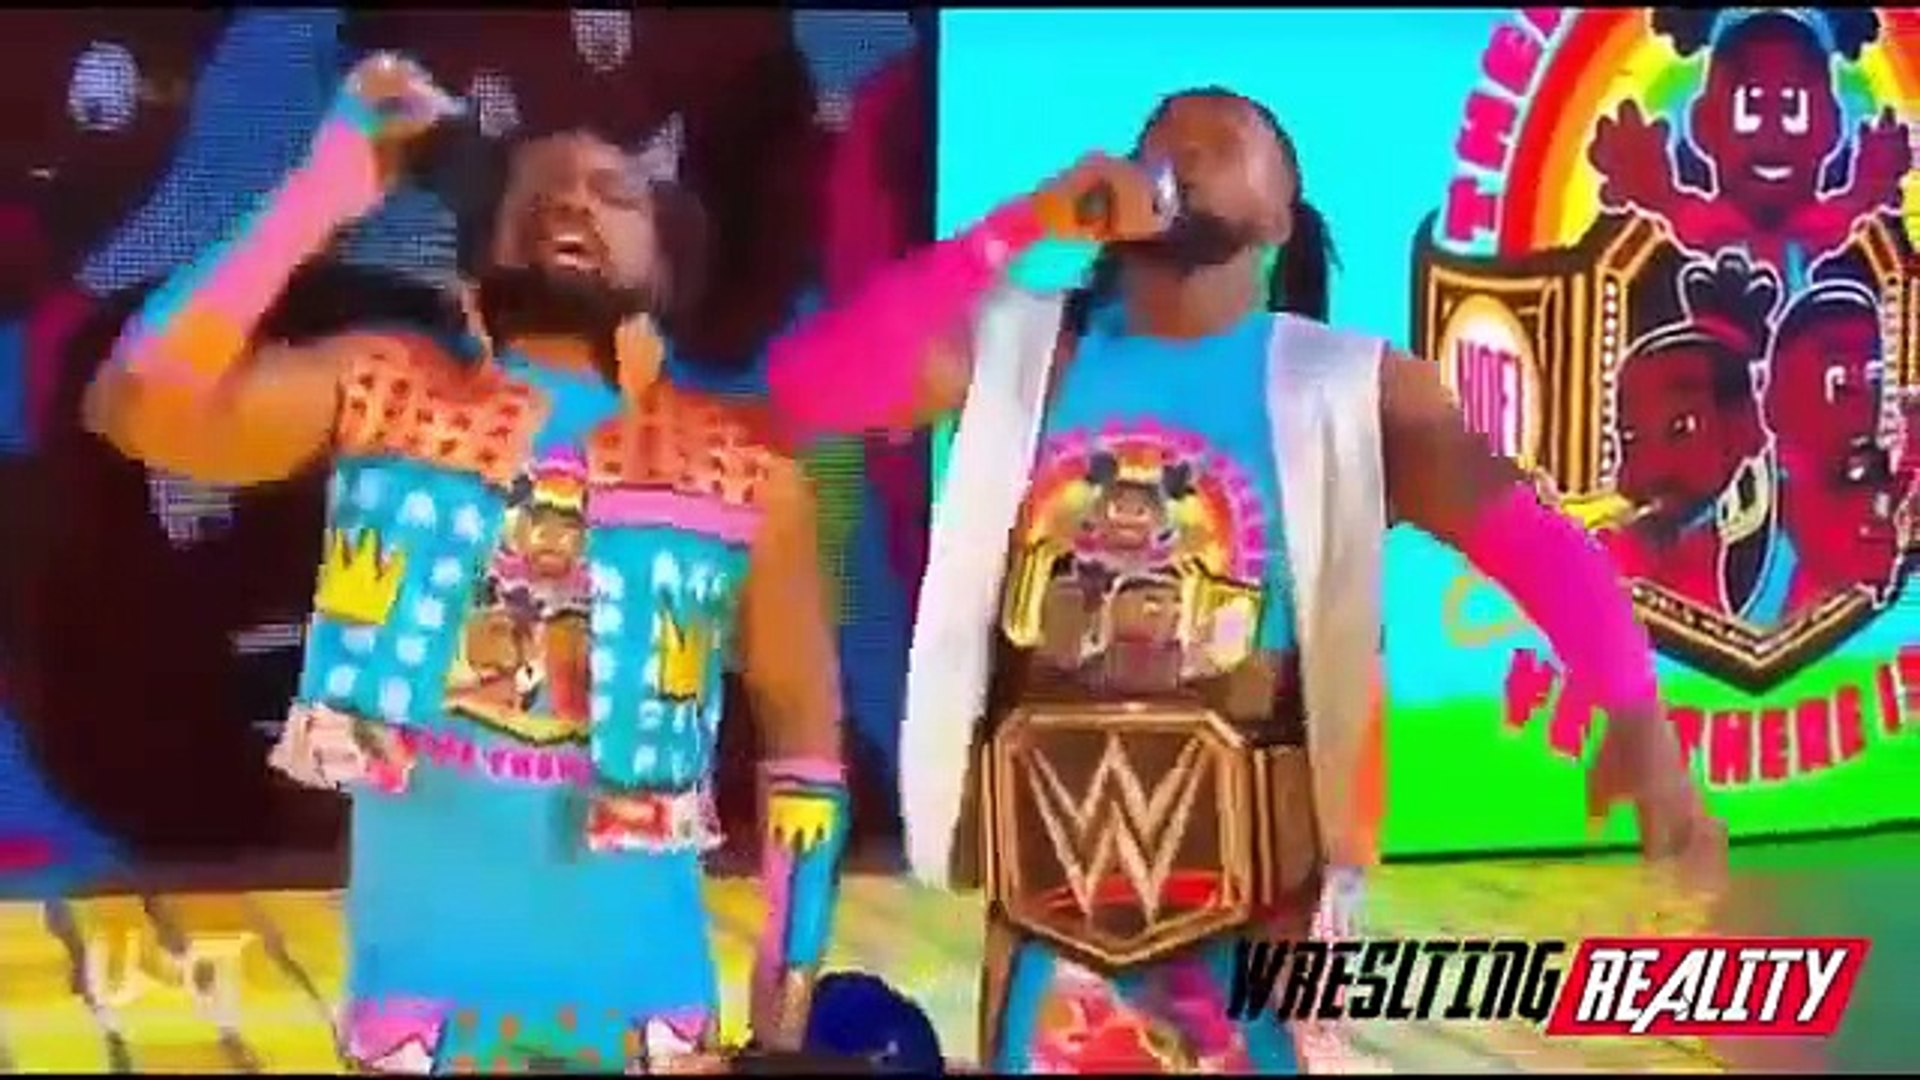 WWE Smack Downs Live 7 May 2019 Full Highlights HD - WWE SmackDown 7 May 2019 Highlights HD